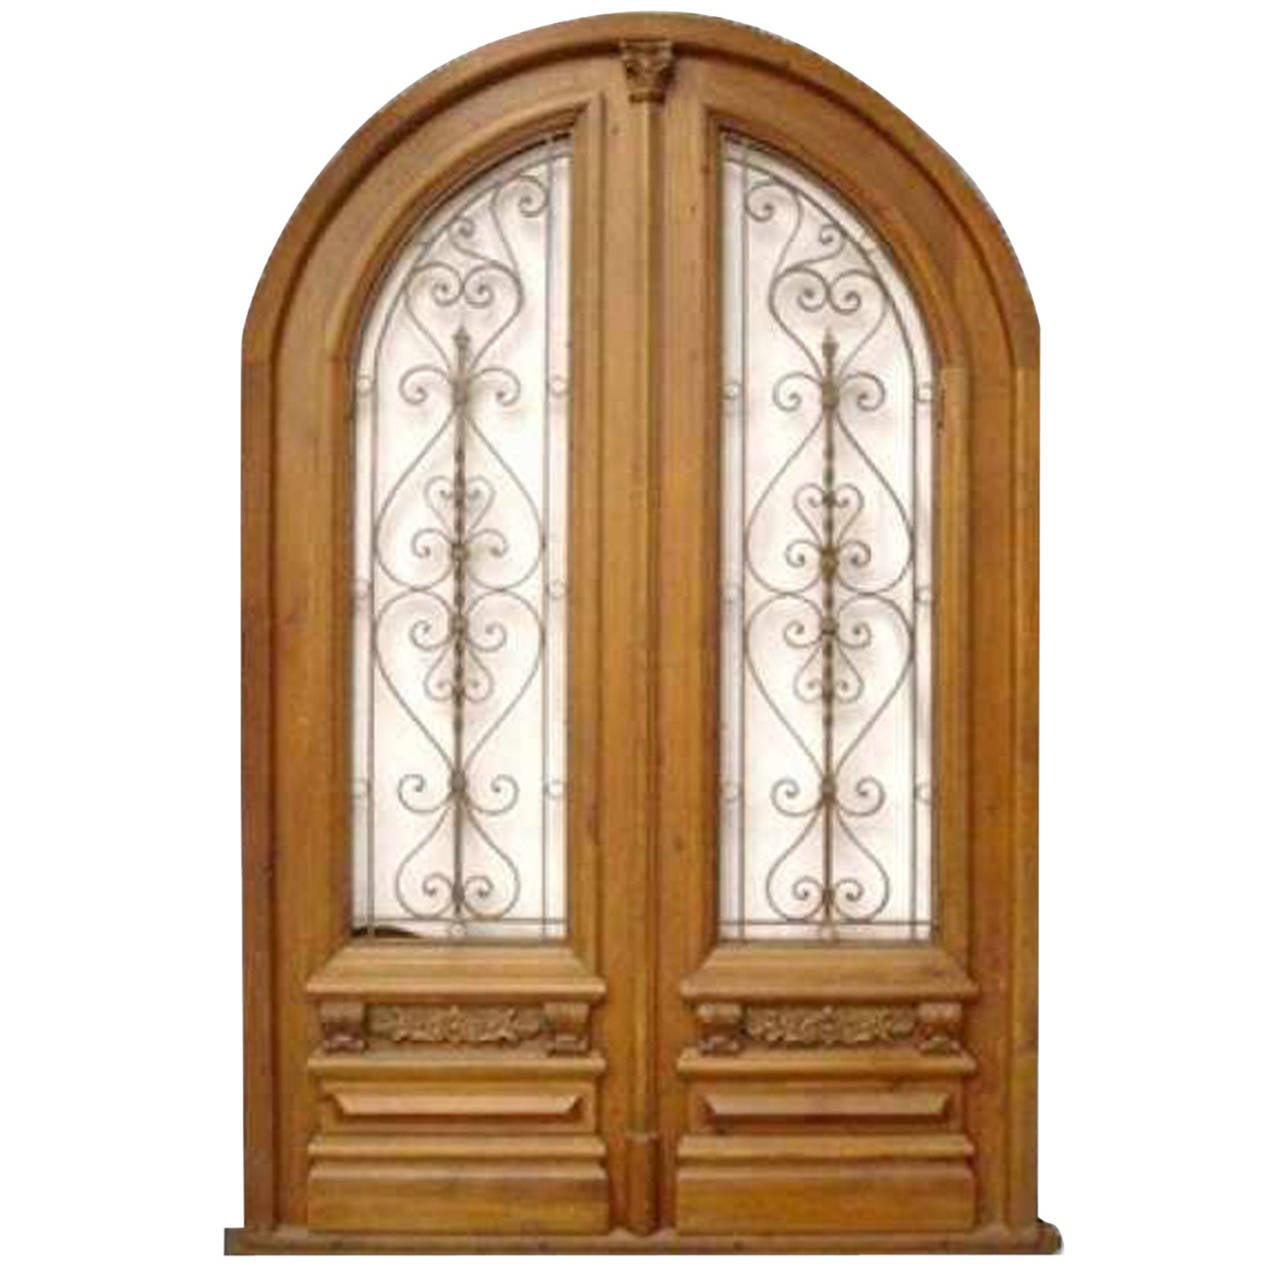 1280 #4B2107 Antique Arched Double Entry Door At 1stdibs save image Arched Double Entry Doors 40771280